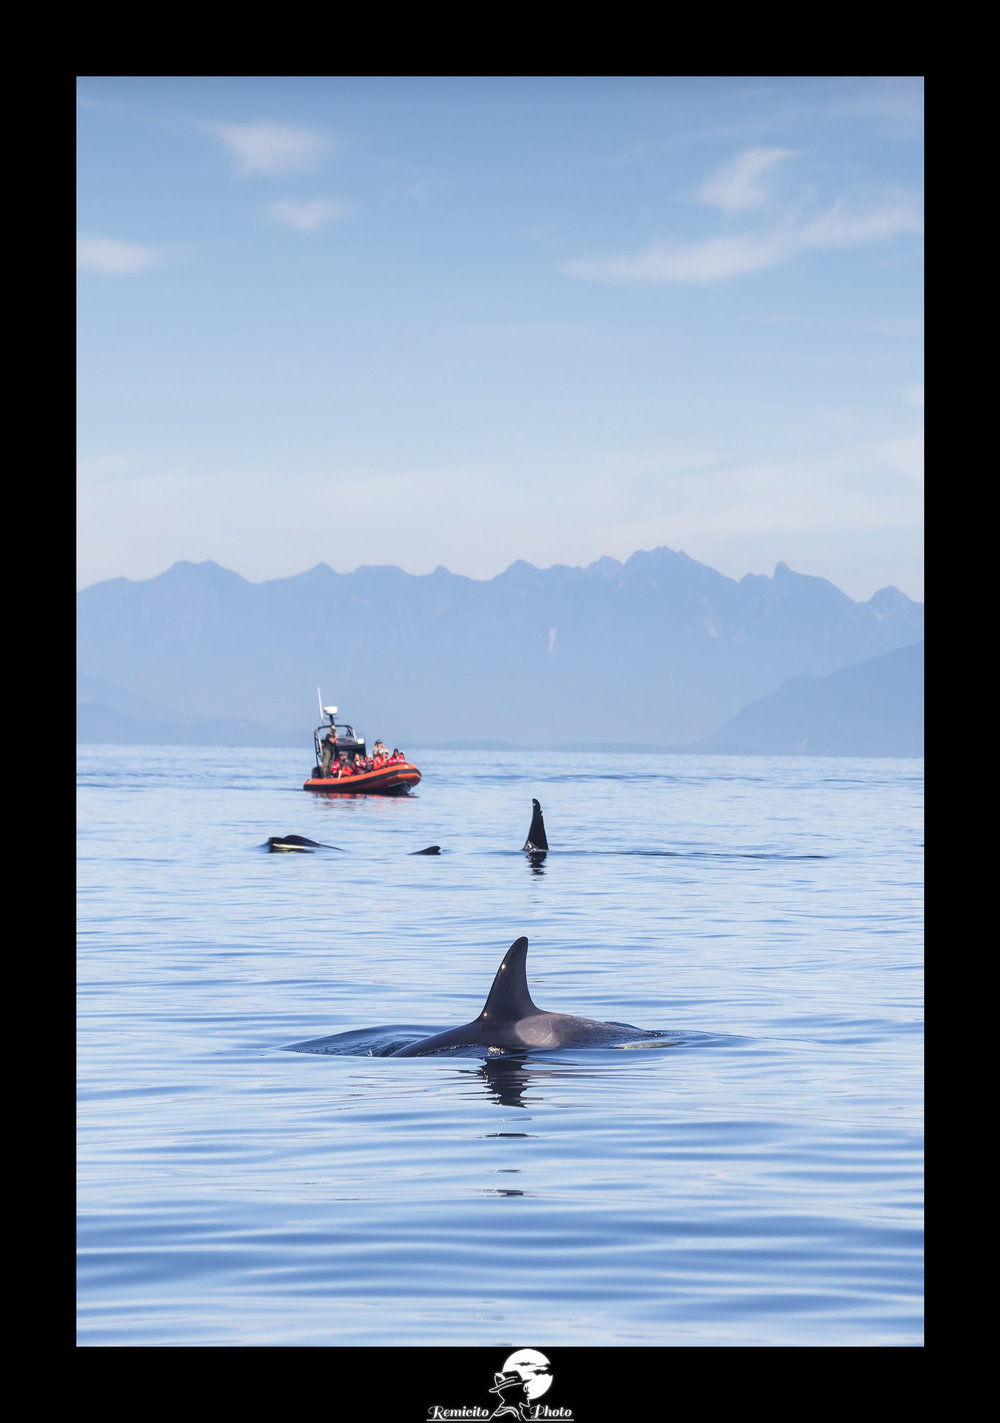 remicito photo, image du jour, photo du jour, photo of the day, meilleur photographe, français, best french photographer, photo orque canada, killer whale canada, vancouver island killer whale